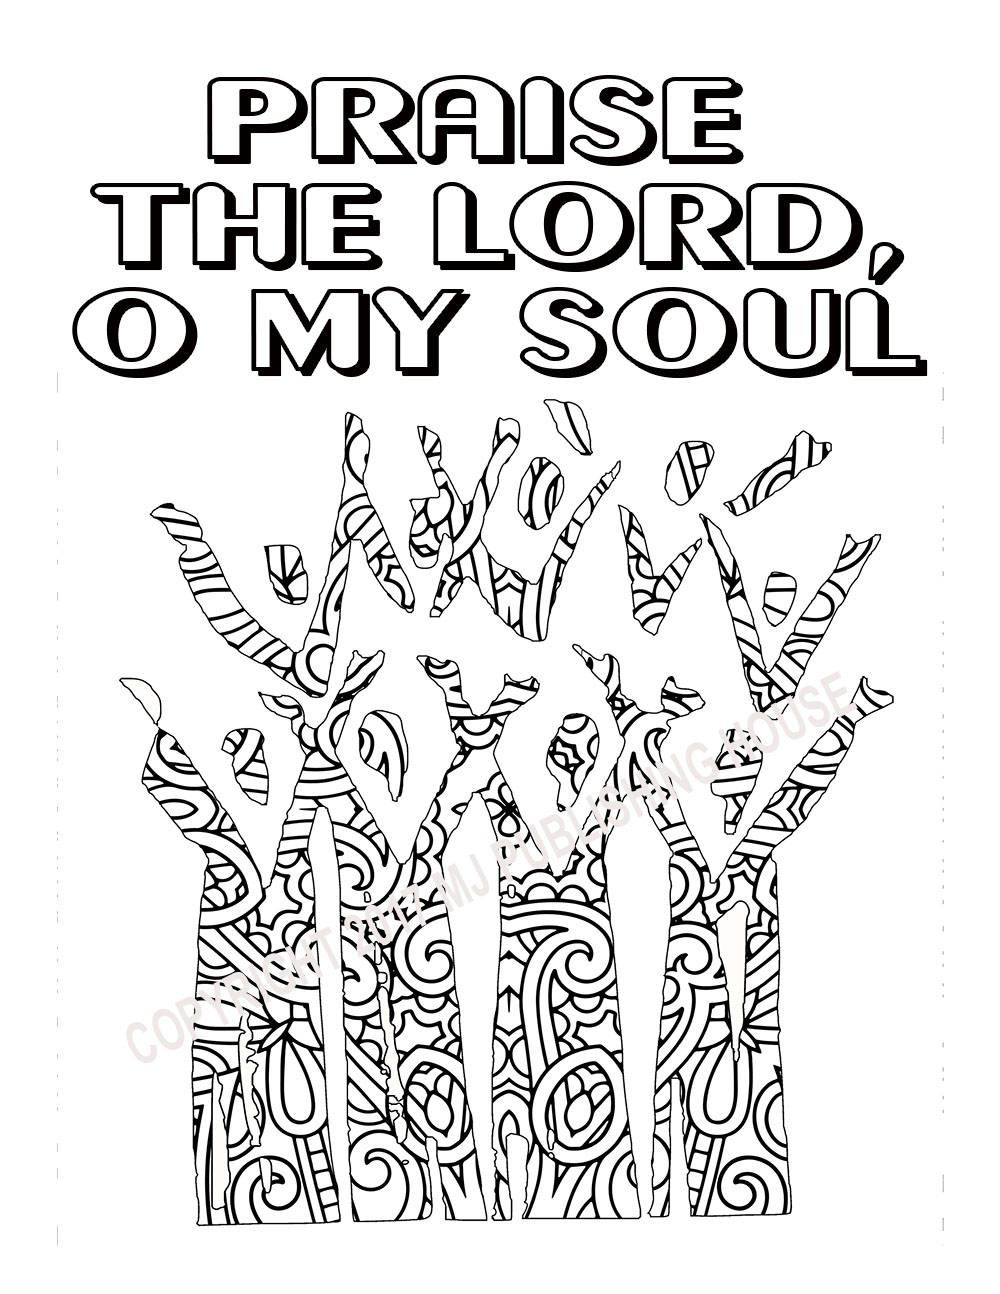 Bible Verse Coloring Page Praise The Lord O My Soul | Coloring For ...